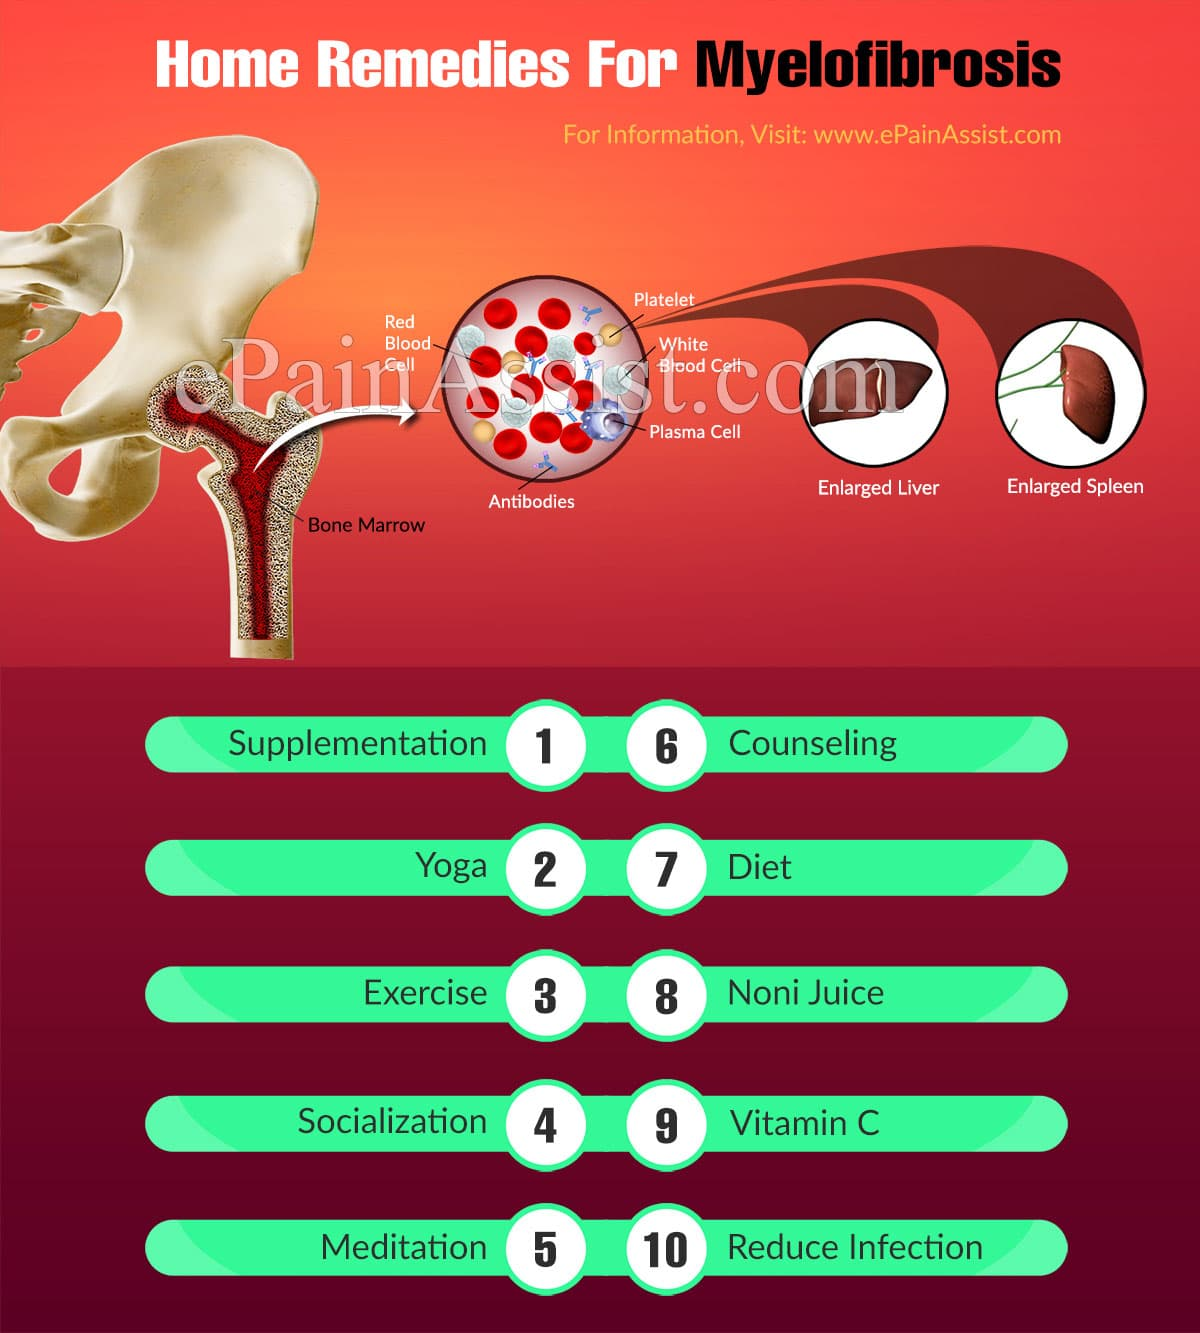 Home Remedies For Myelofibrosis